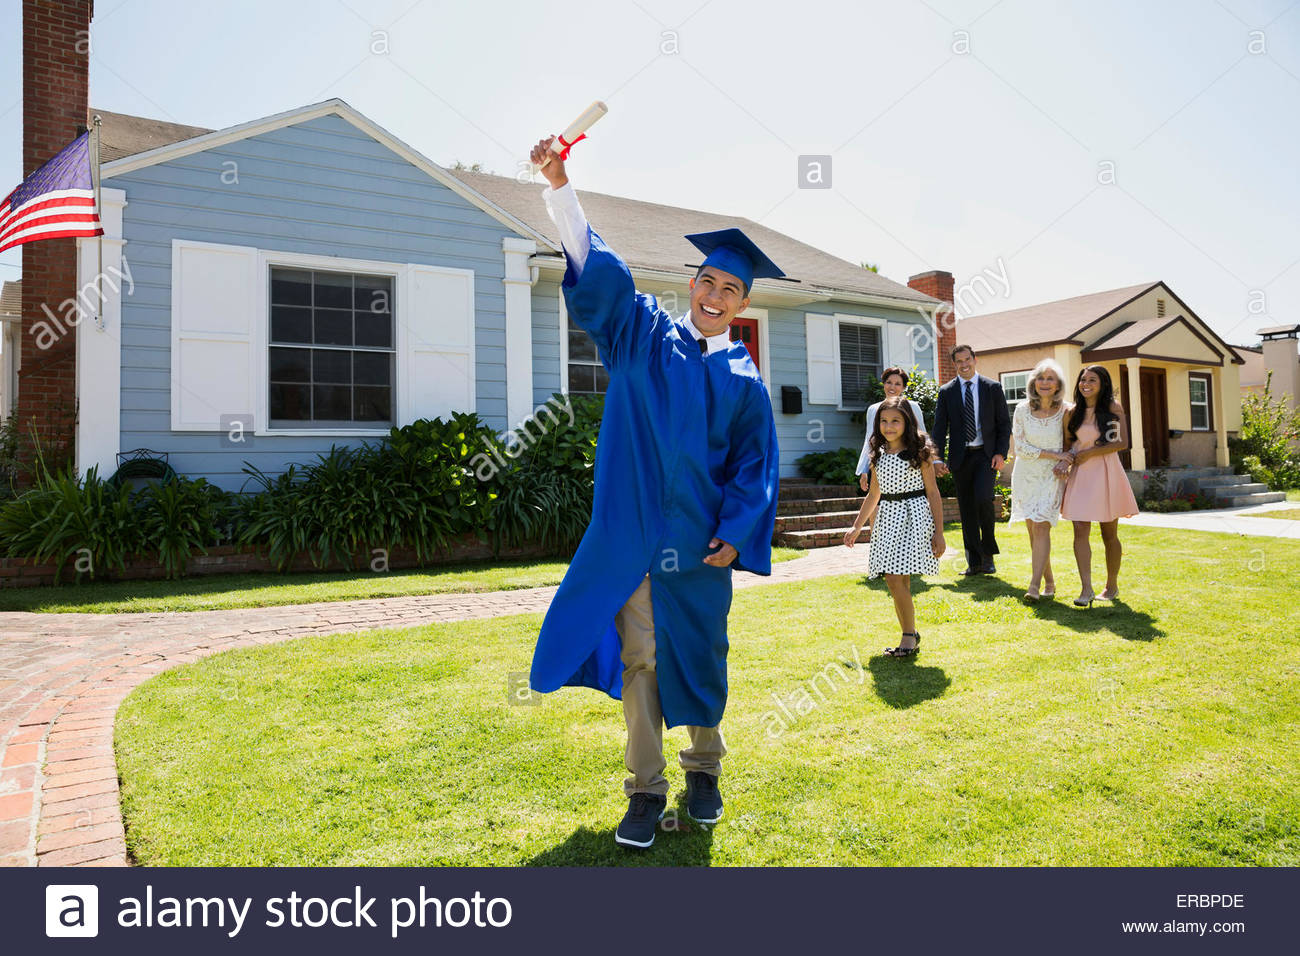 Exuberant graduate holding diploma with family front yard - Stock Image